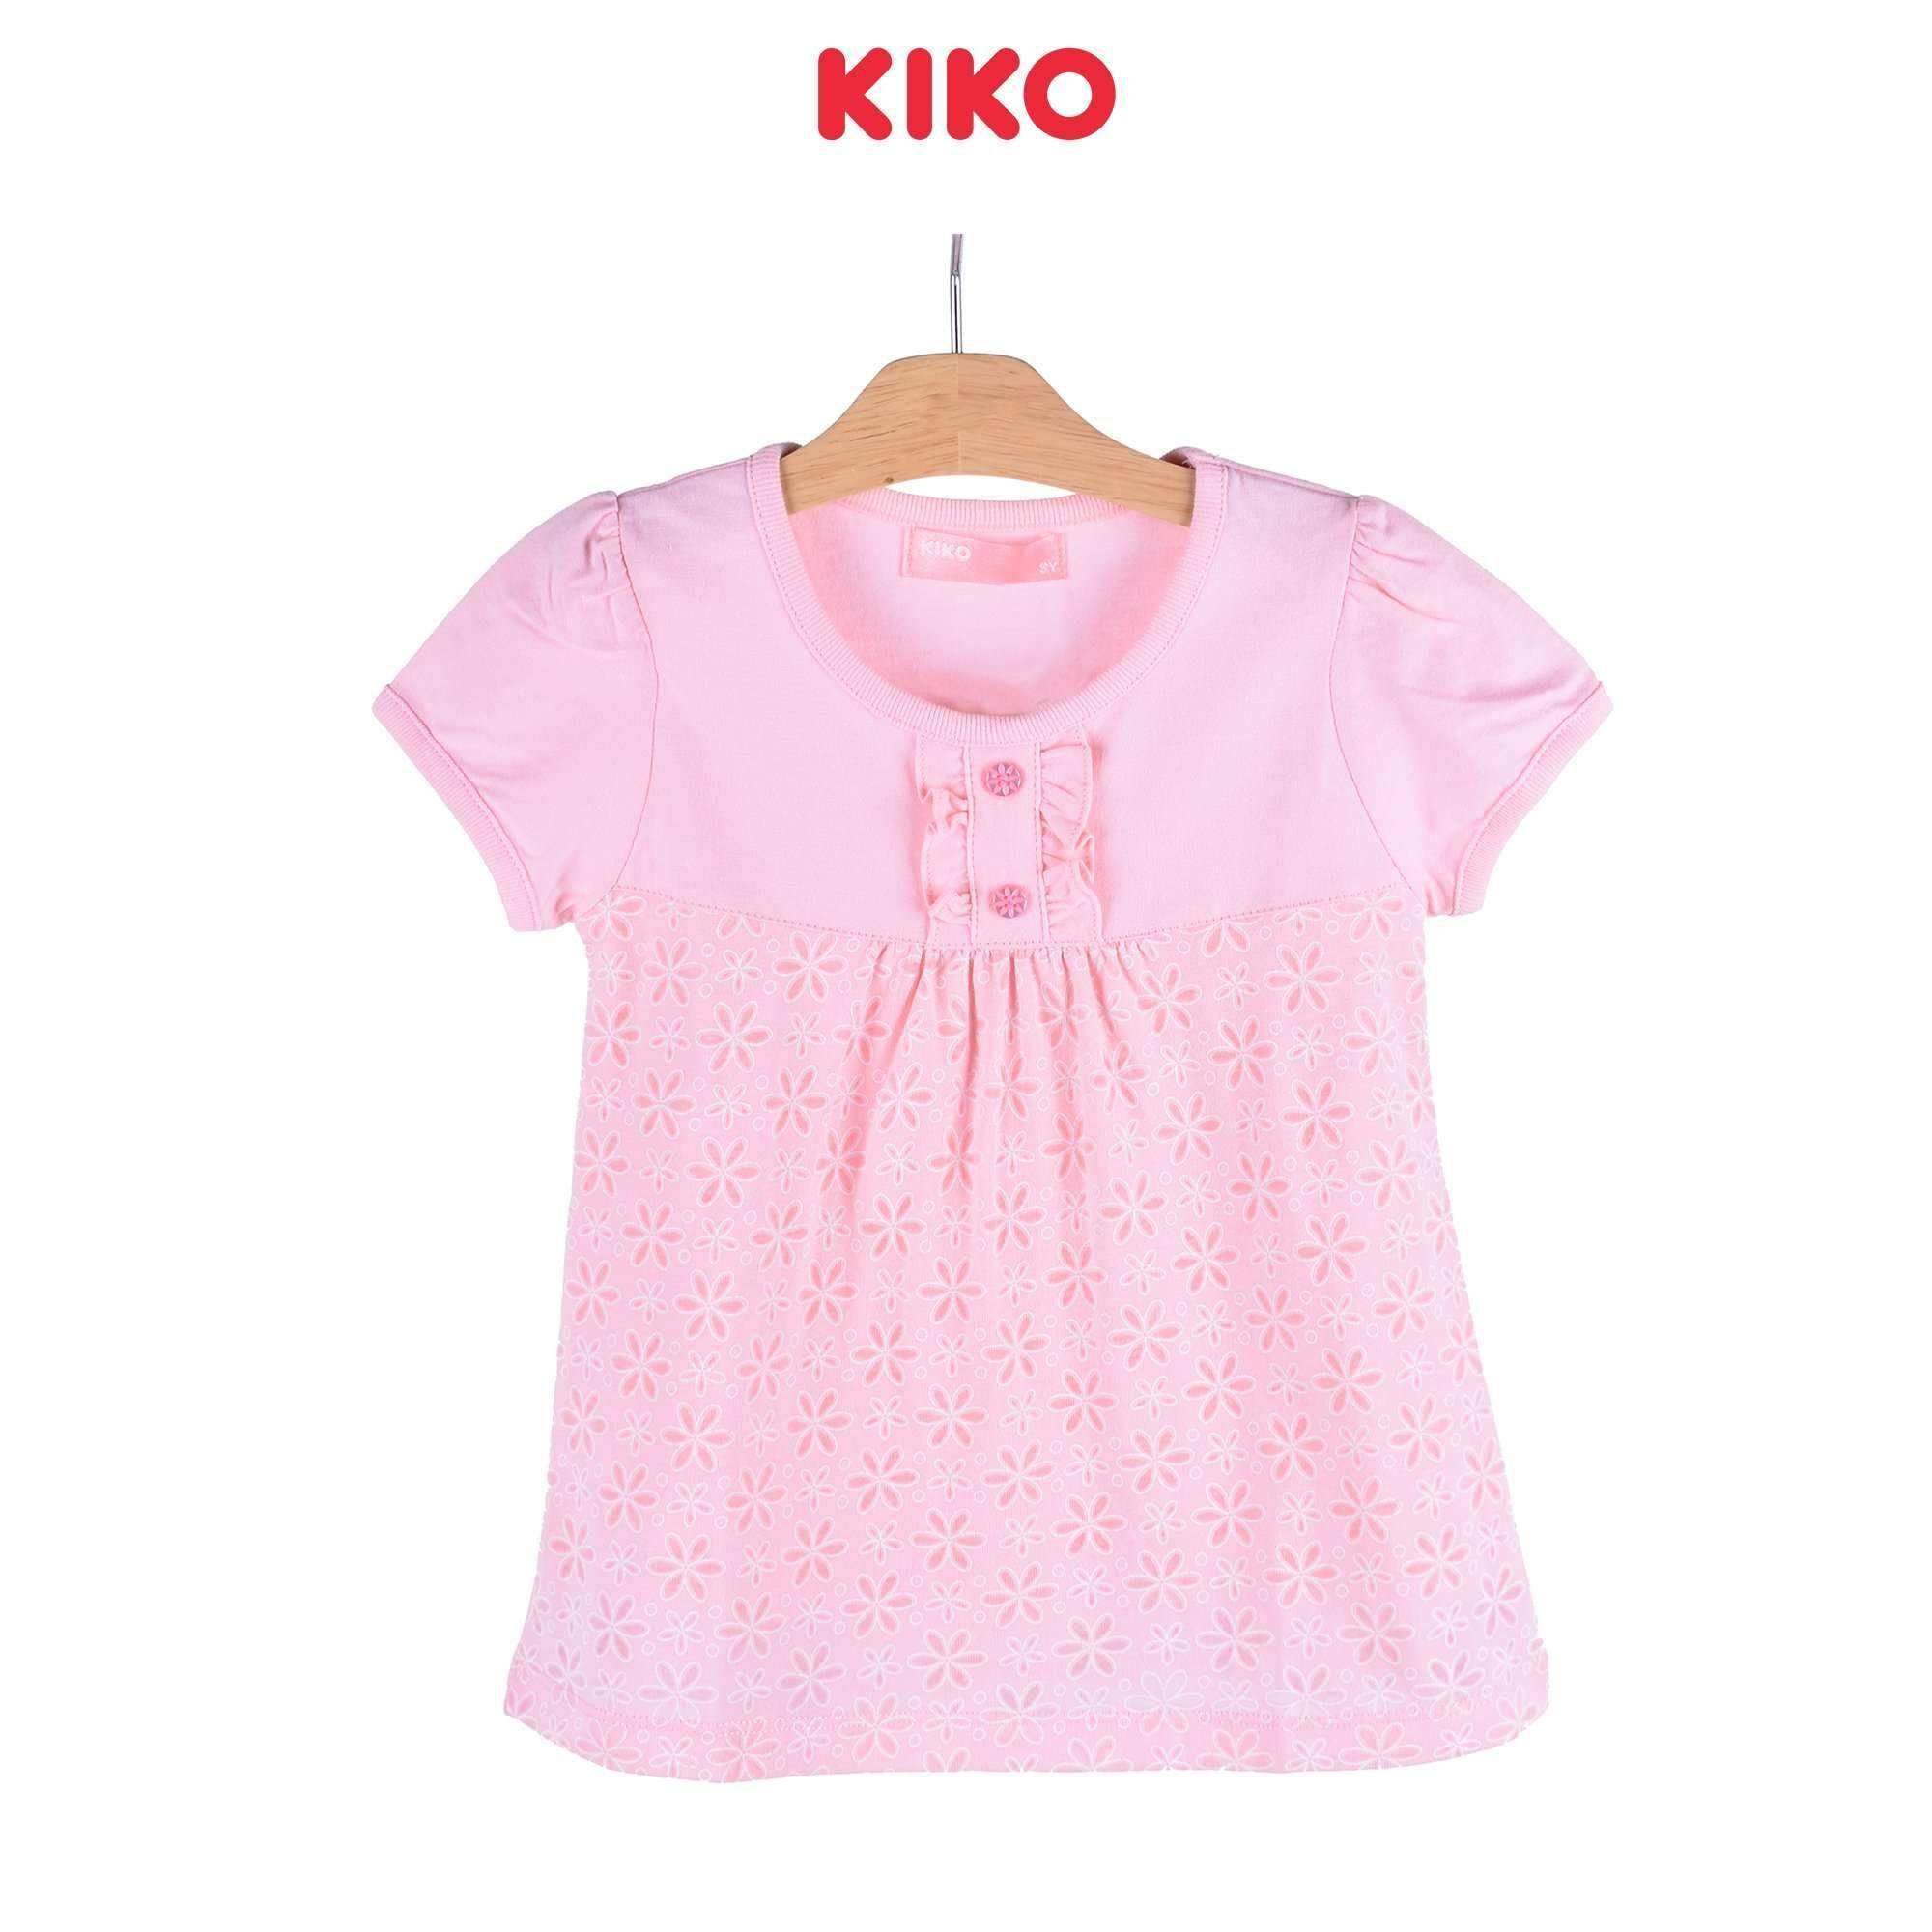 KIKO Girl Short Sleeve Tee 125040-112 : Buy KIKO online at CMG.MY